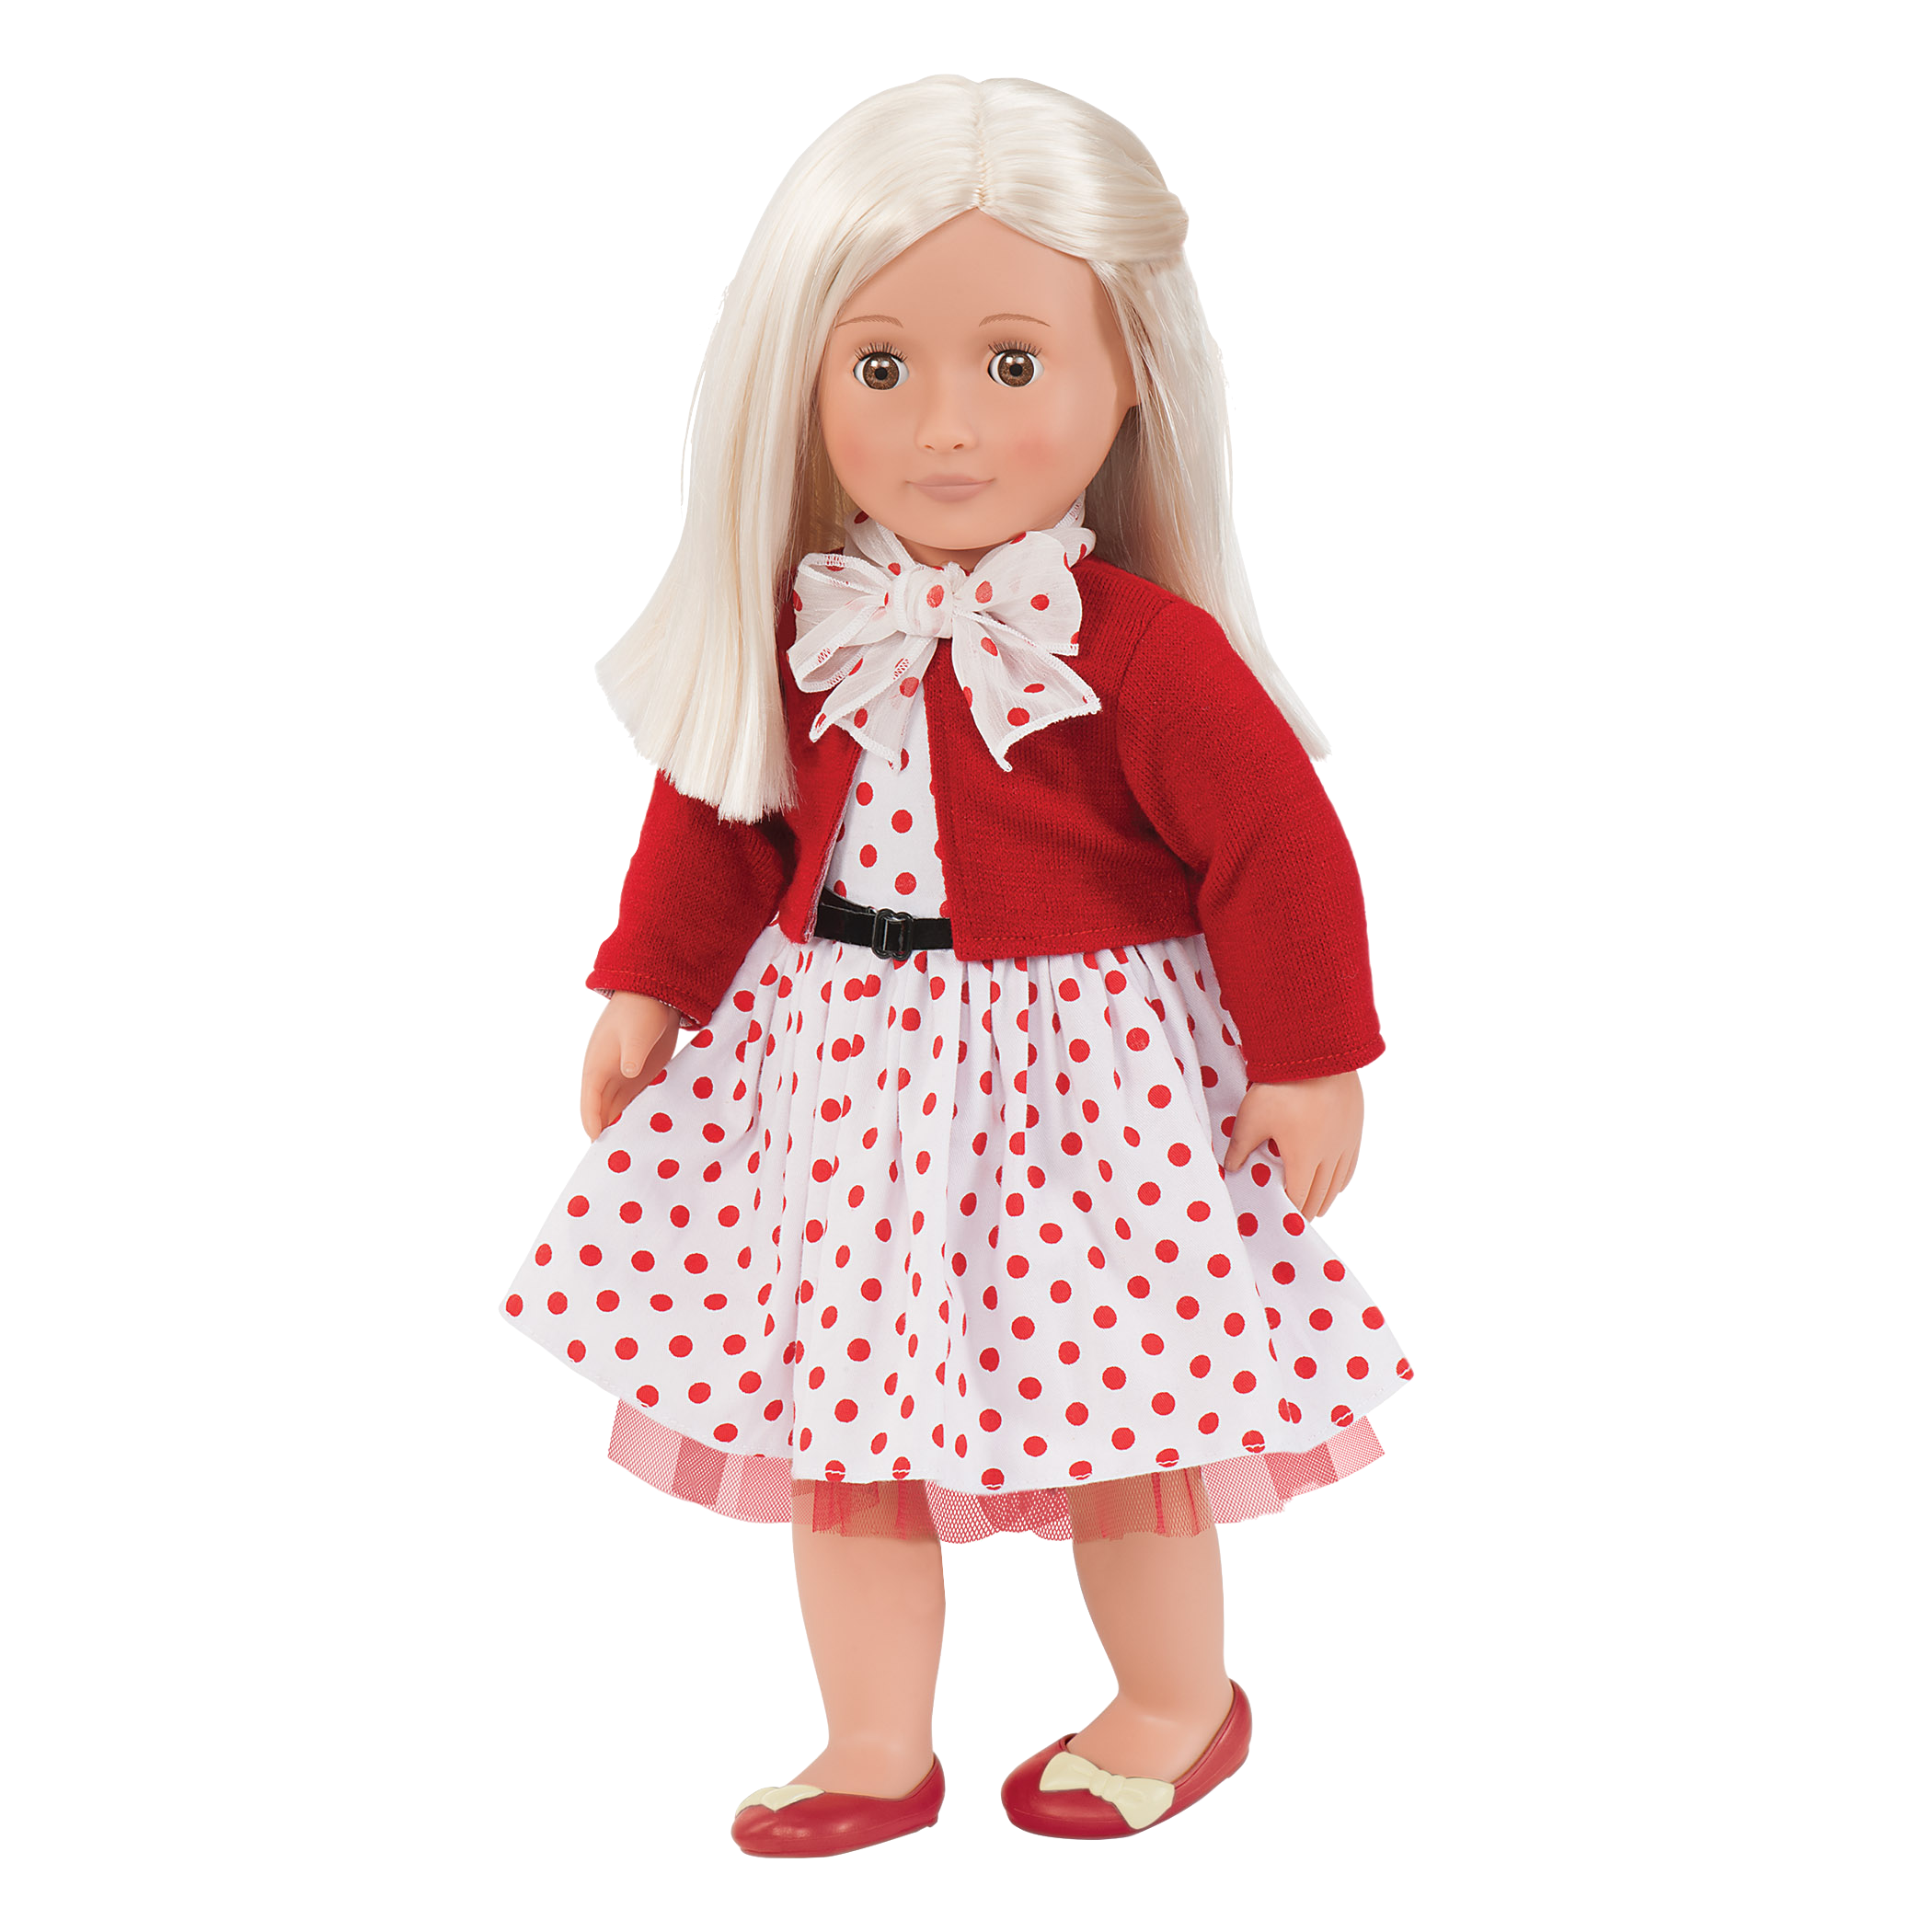 Rose Retro 18-inch Doll with Polka Dot Dress